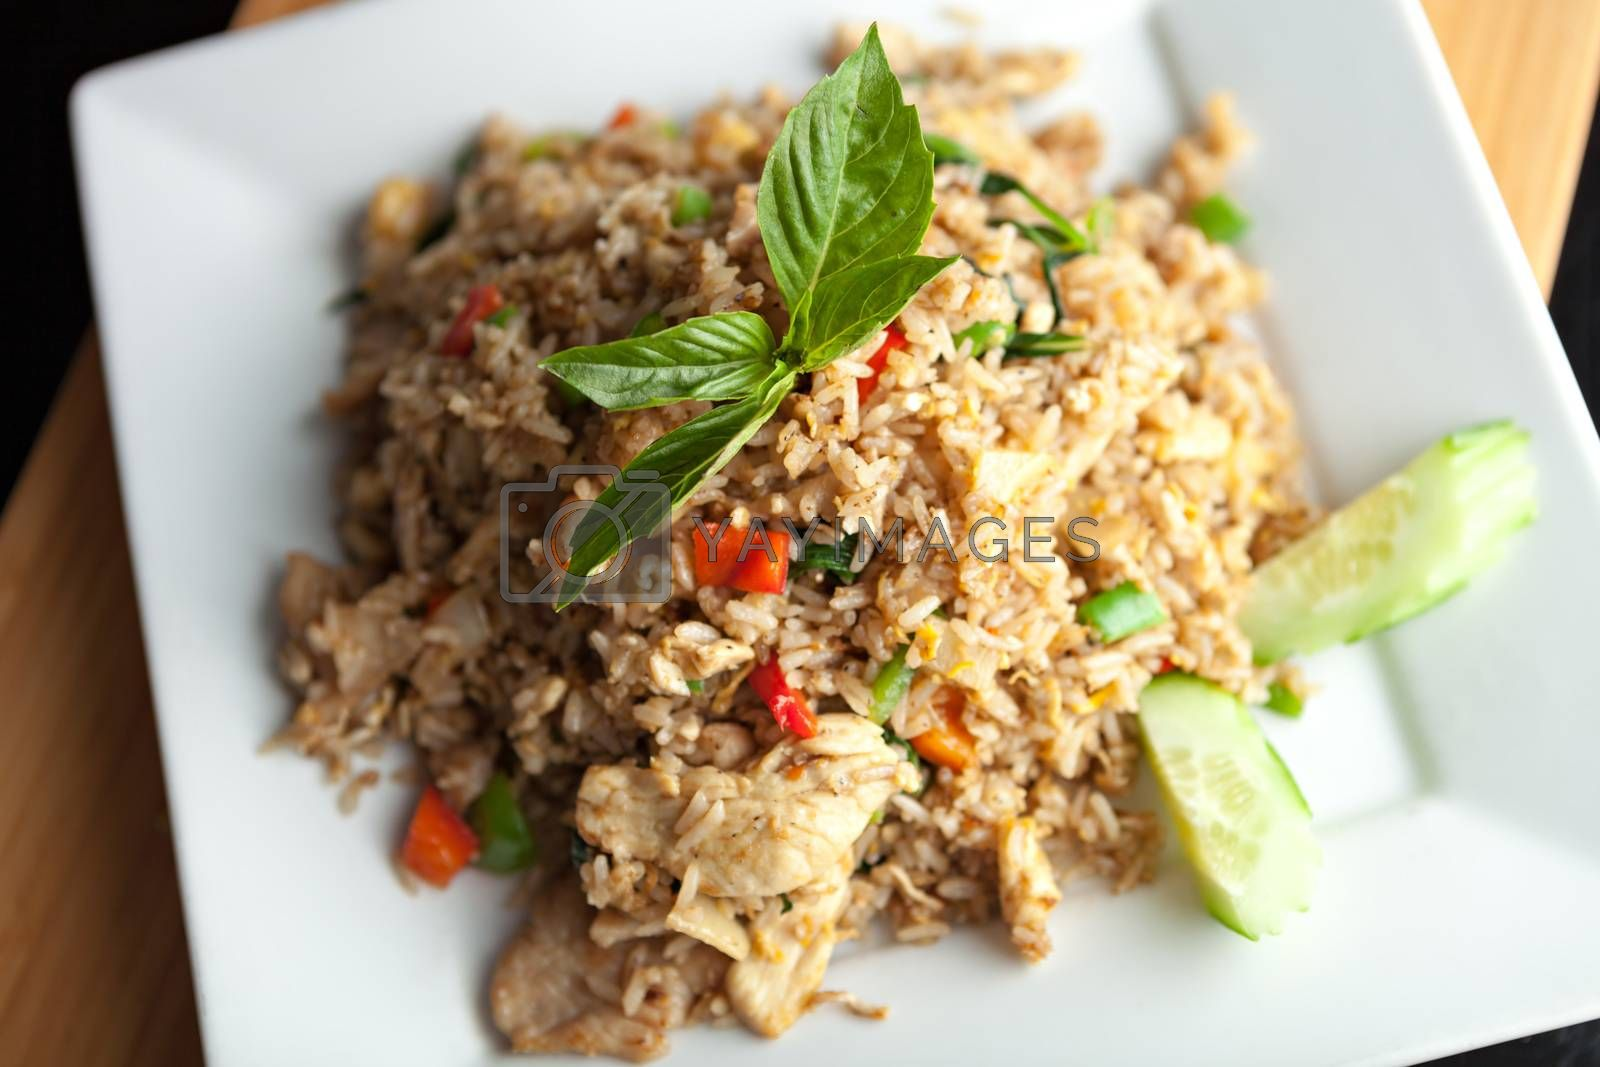 A Thai dish of chicken fried rice presented on a square white plate.  Shallow depth of field.